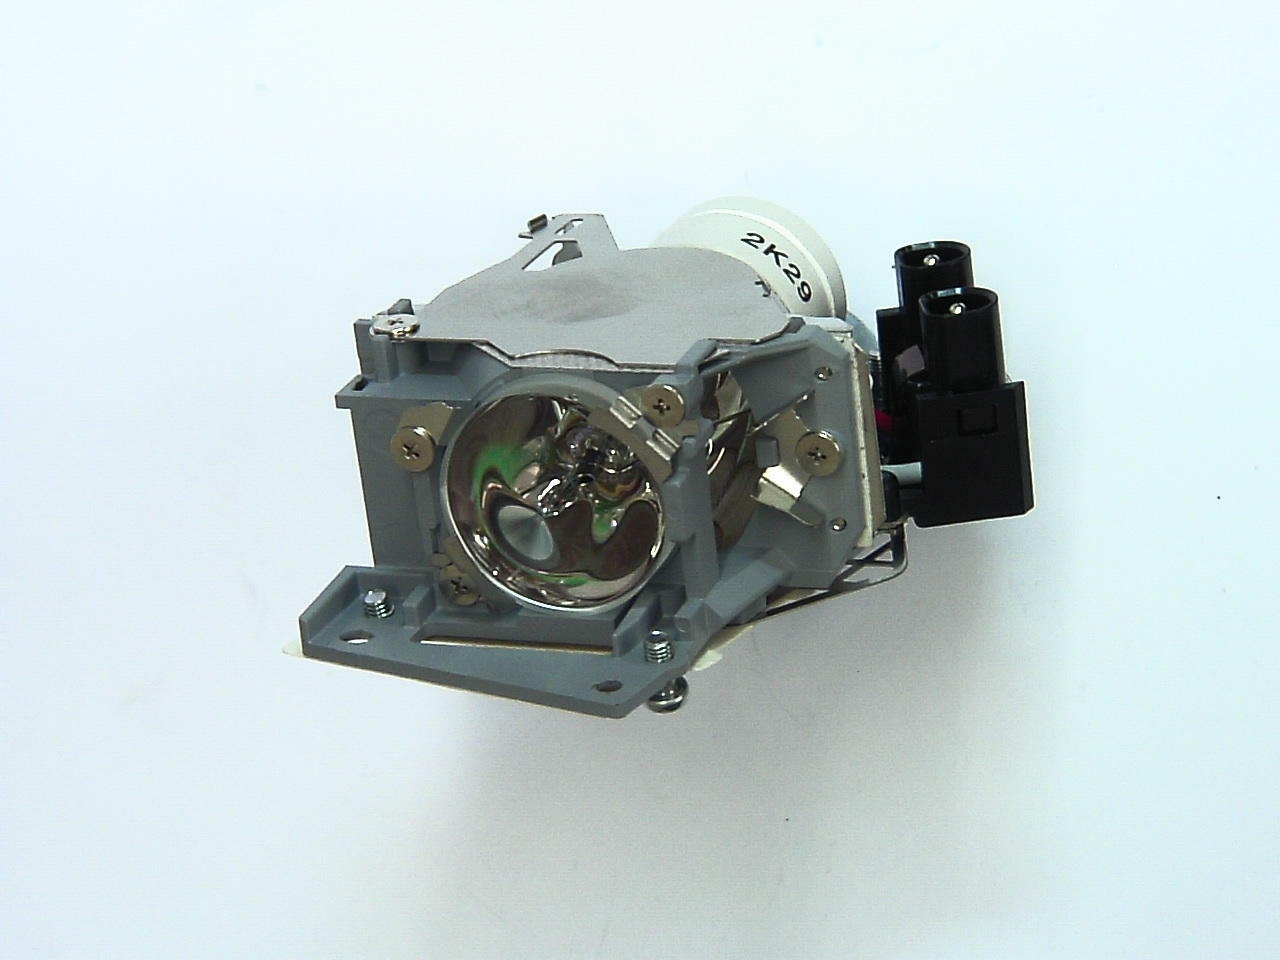 INFOCUS INFOCUS M9 (CM) Genuine Original Projector Lamp